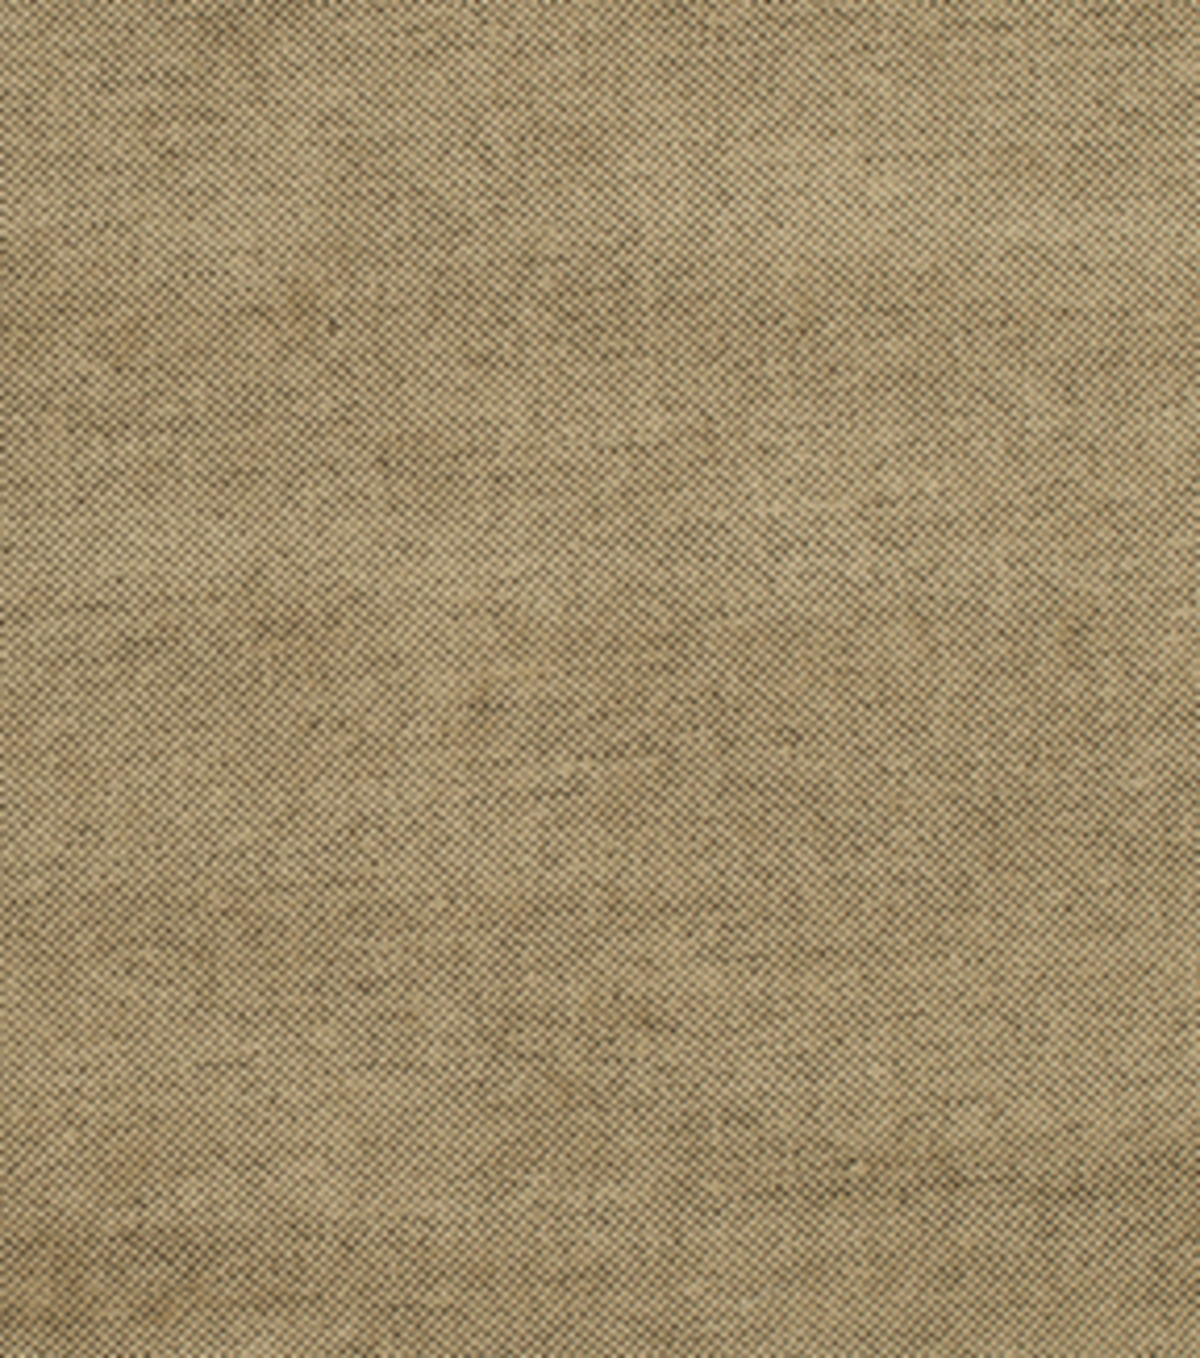 Home Decor 8\u0022x8\u0022 Fabric Swatch-Signature Series Claudel Mocha